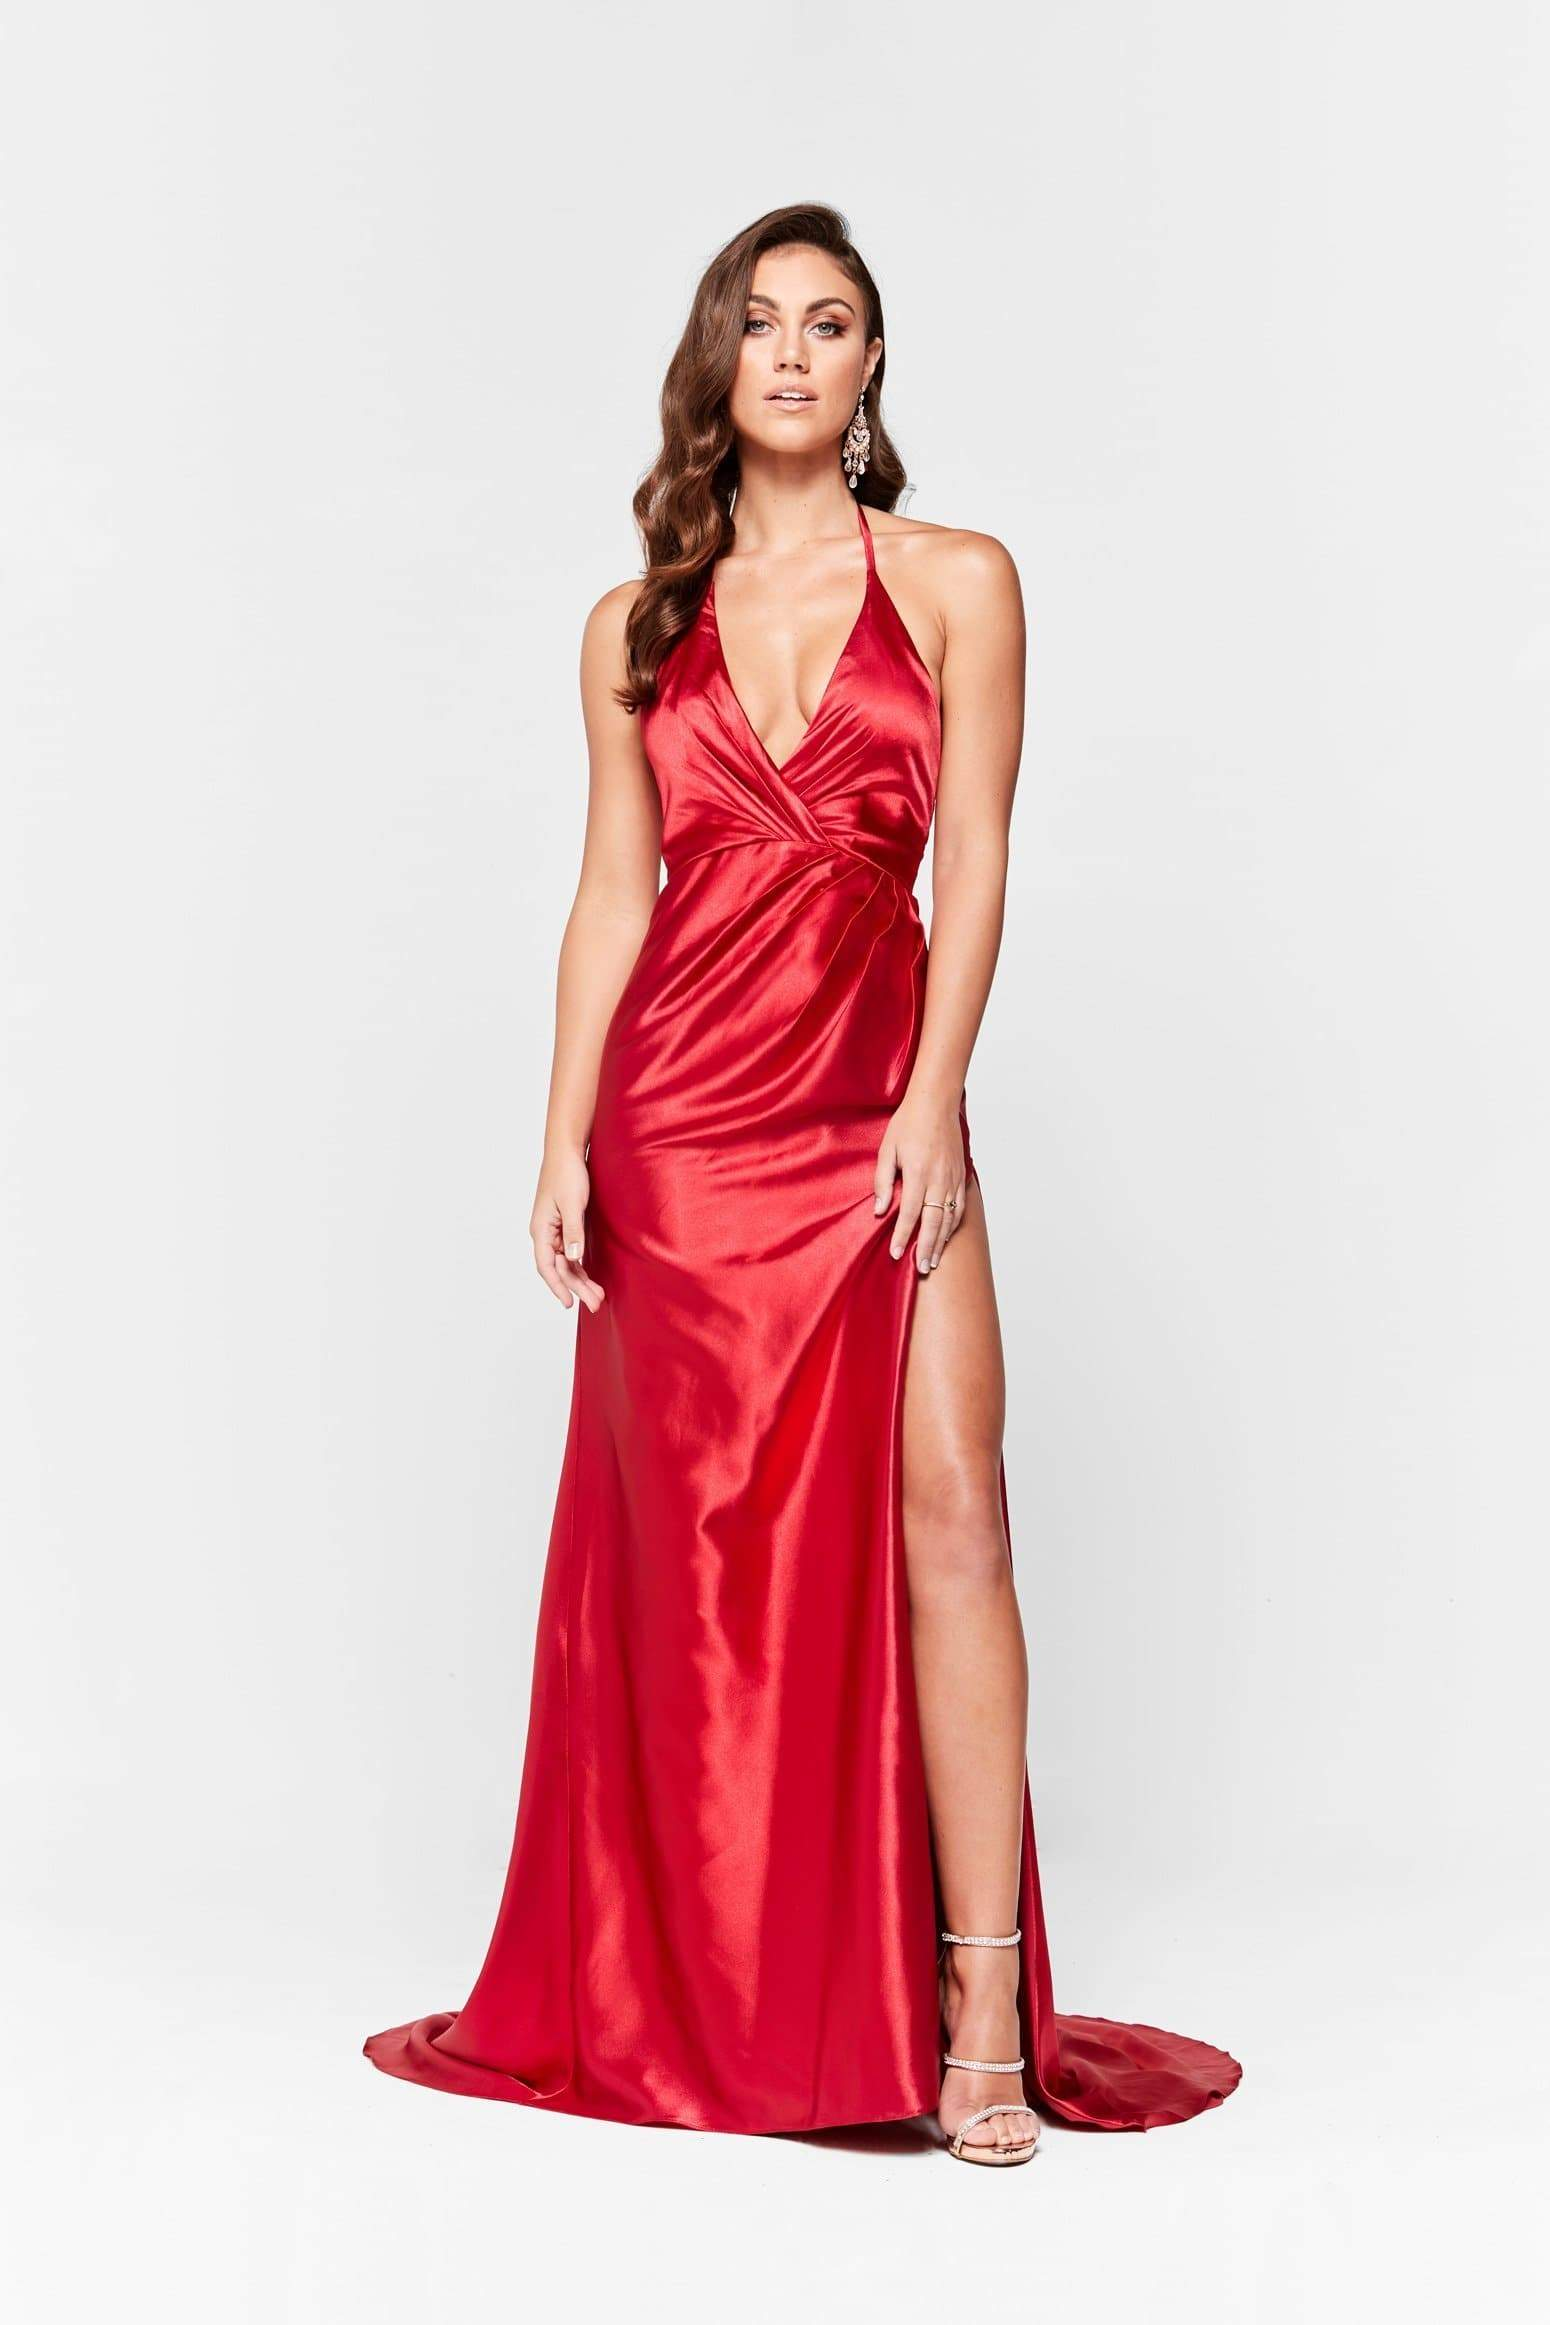 A&N Leonie - Deep Red Satin Gown with Halter V Neck and Side Slit